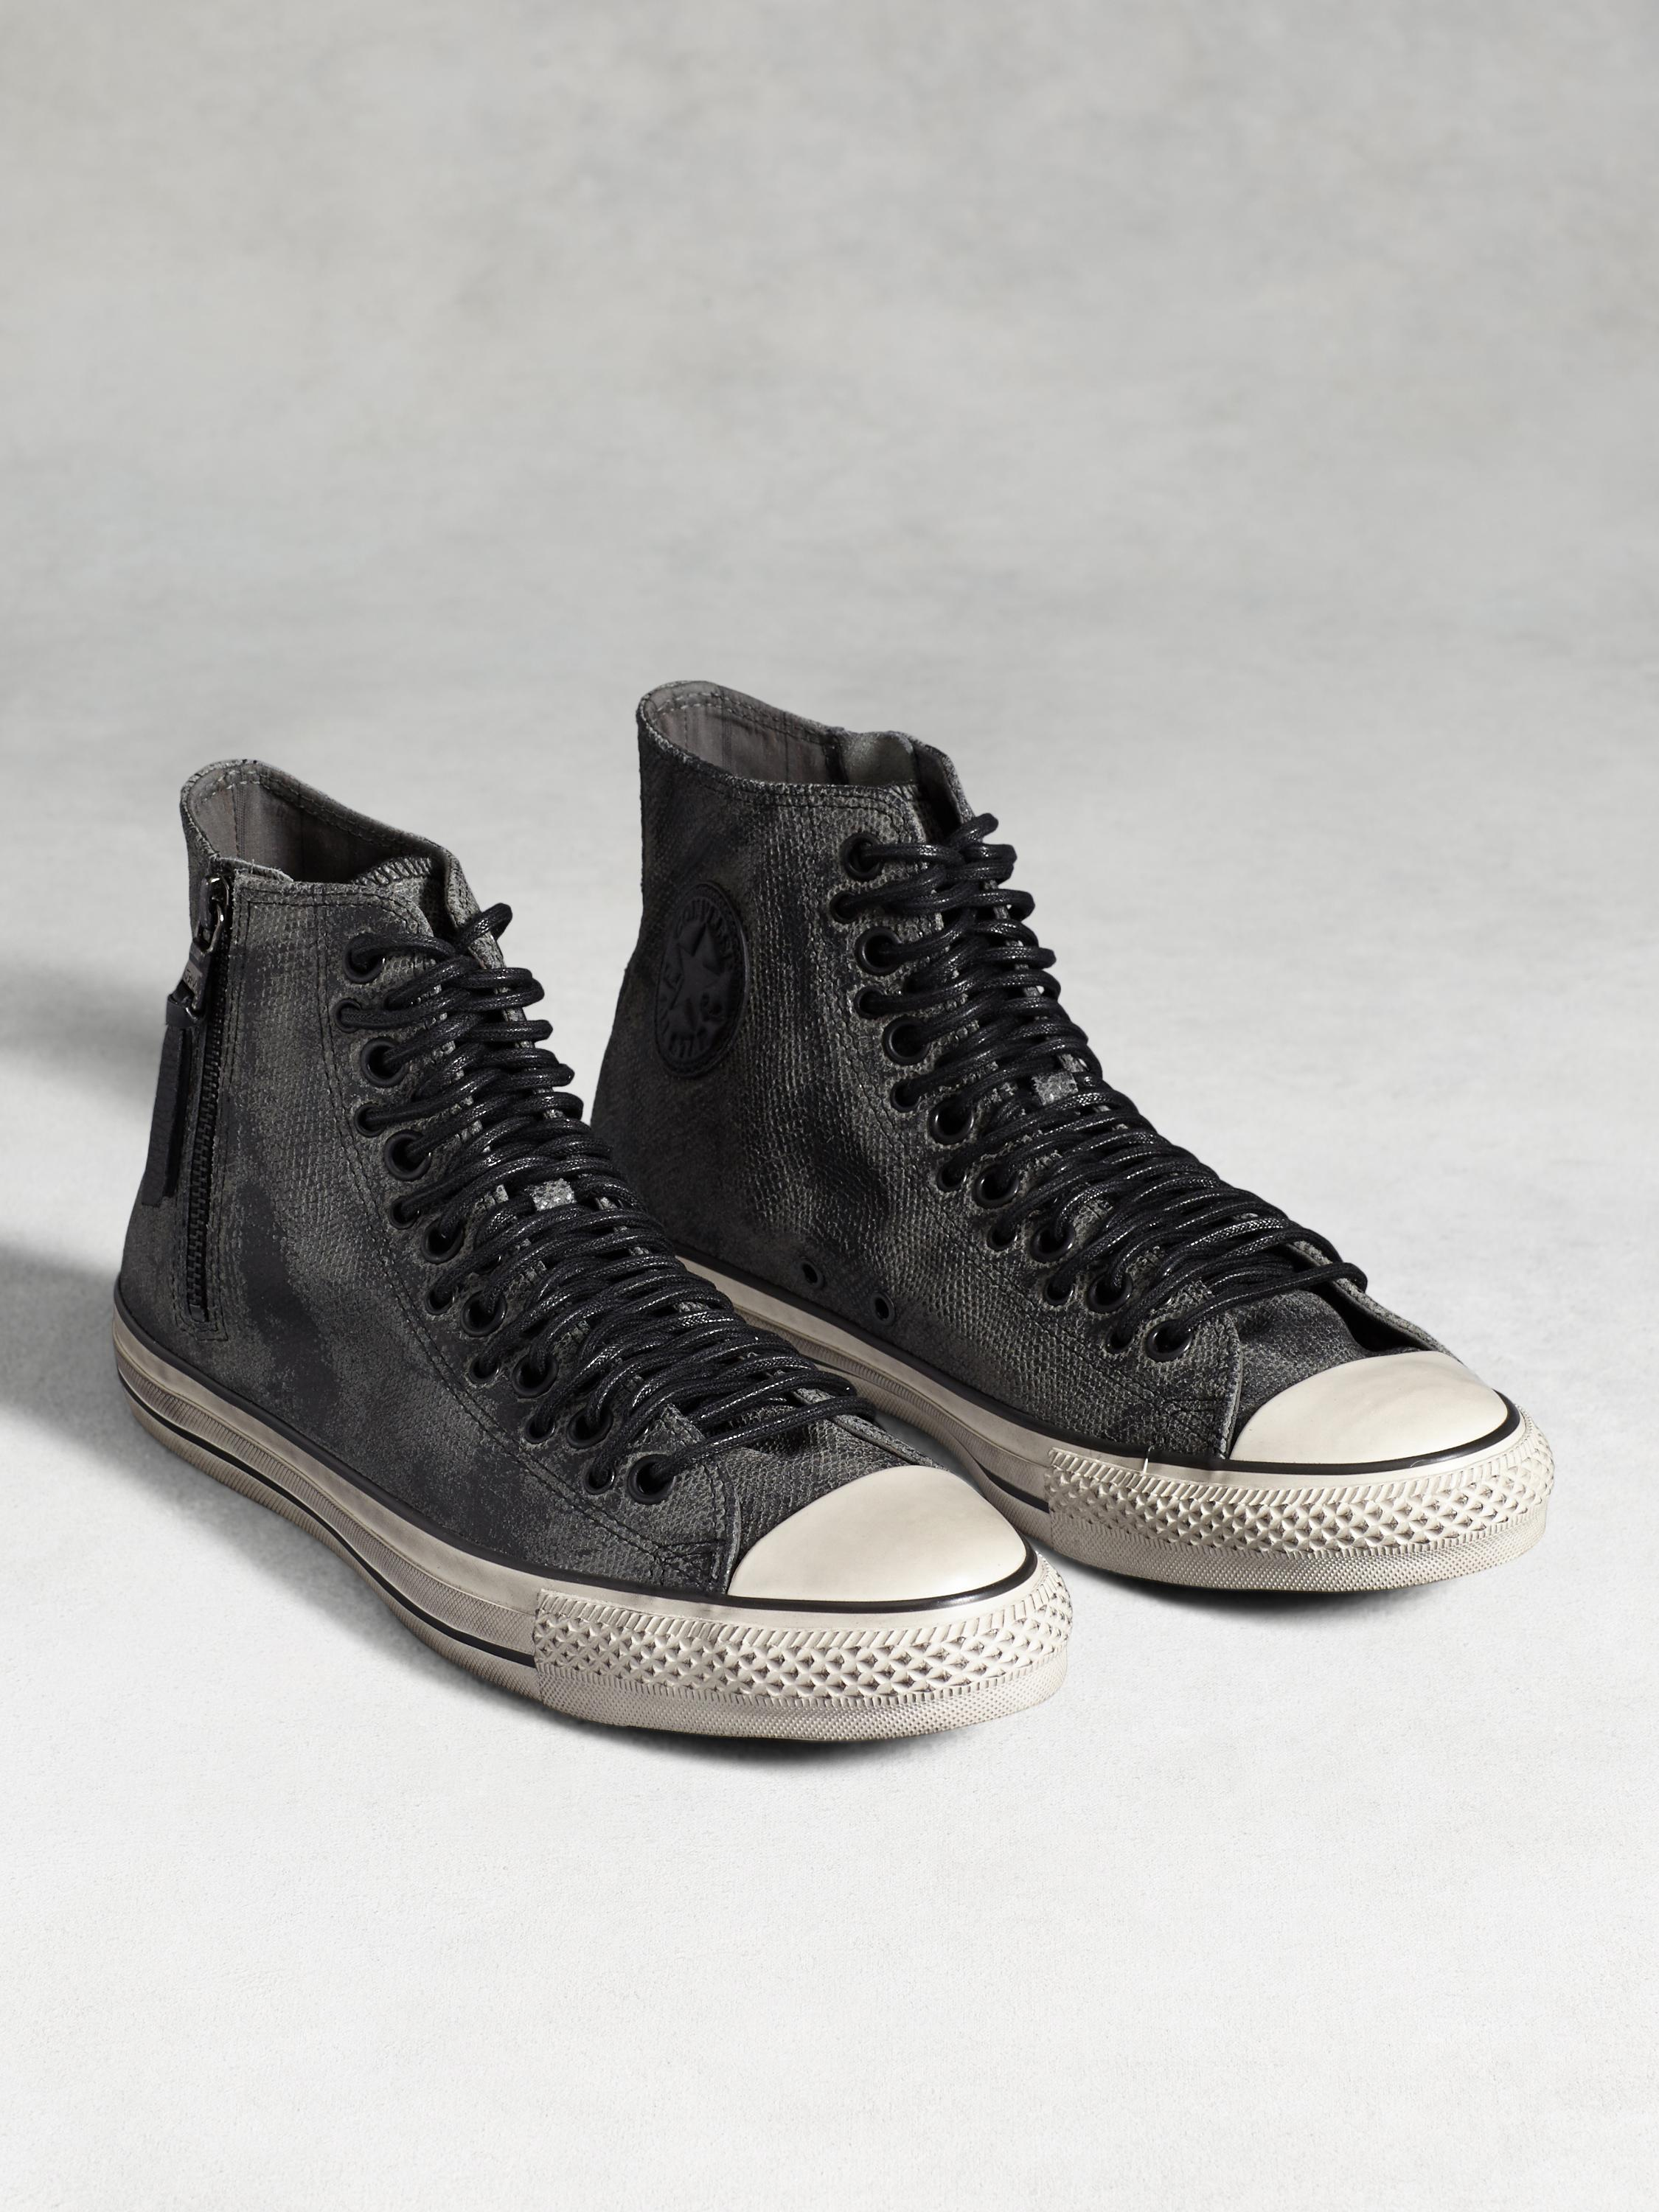 acab0b8cffea Chuck Taylor Multi Eye High Top - John Varvatos